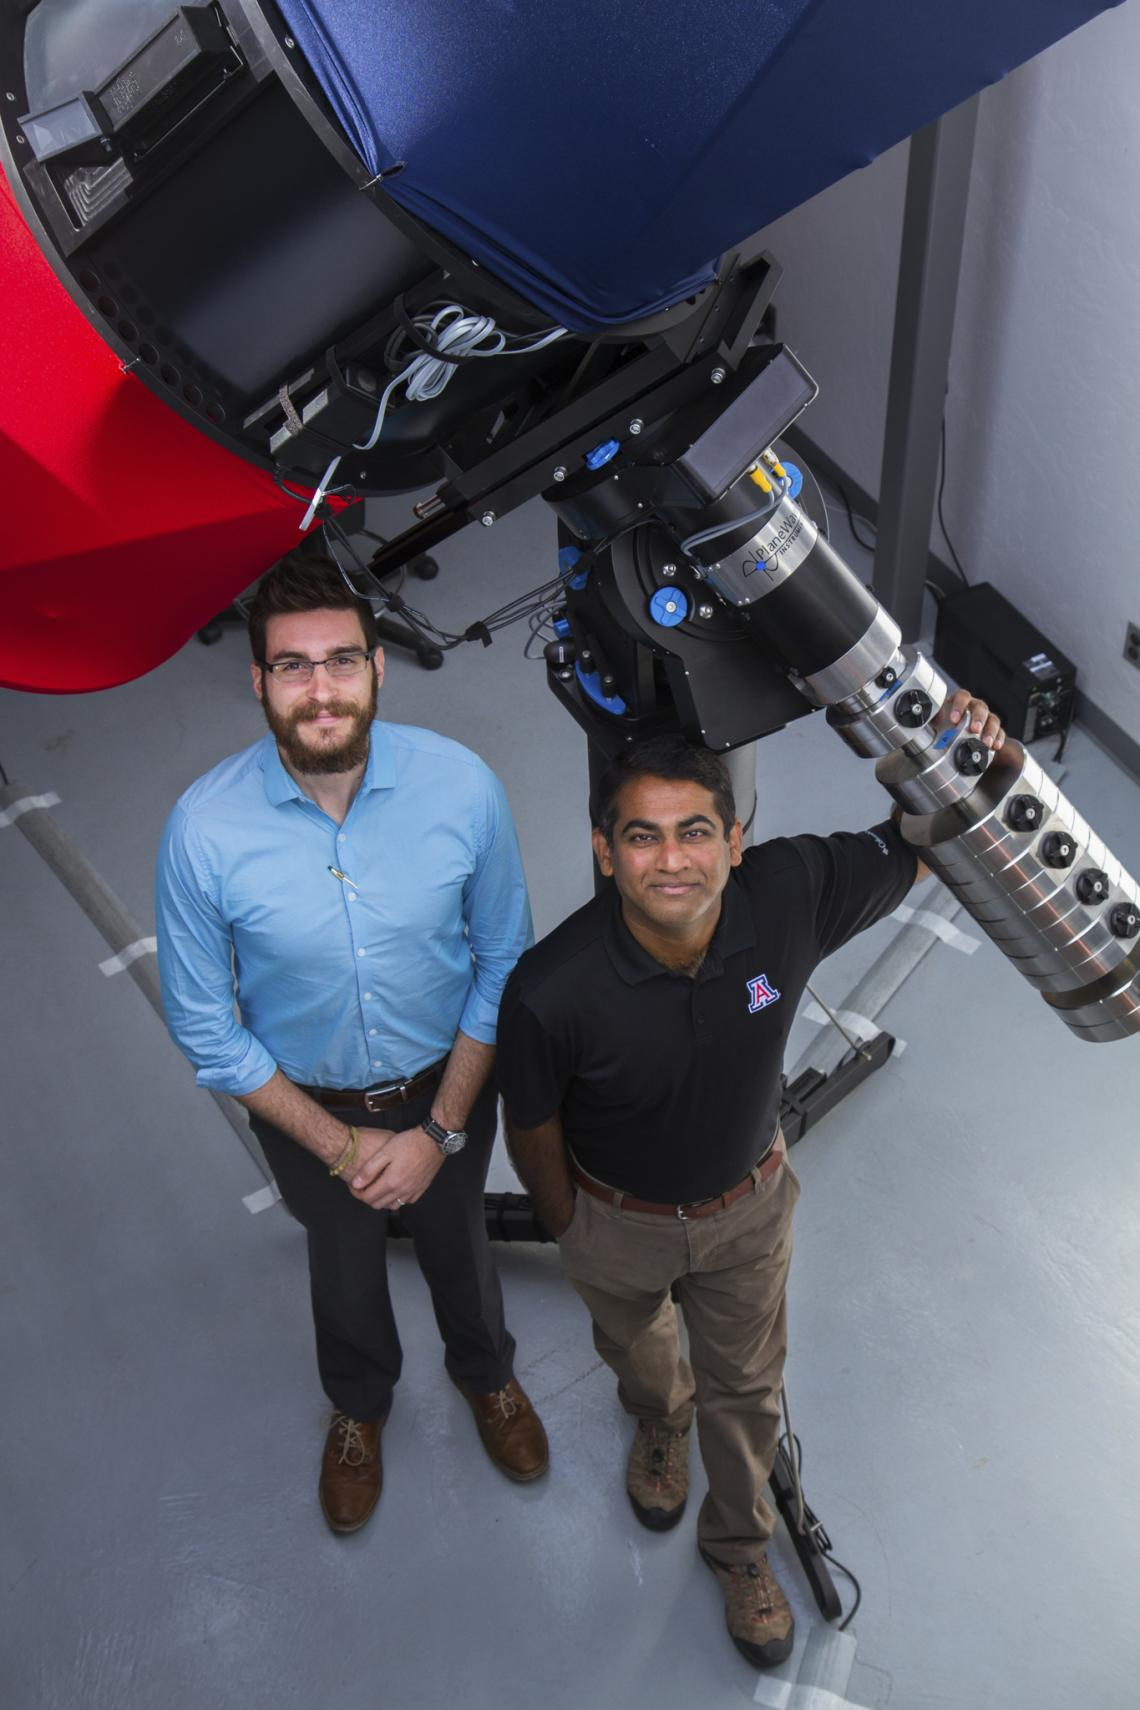 Vishnu Reddy  and Tanner Campbell stand next to the RAPTORS telescope at the UA's Kuiper Space Sciences building. They would like to mount an optical sensor system on the telescope in the future.